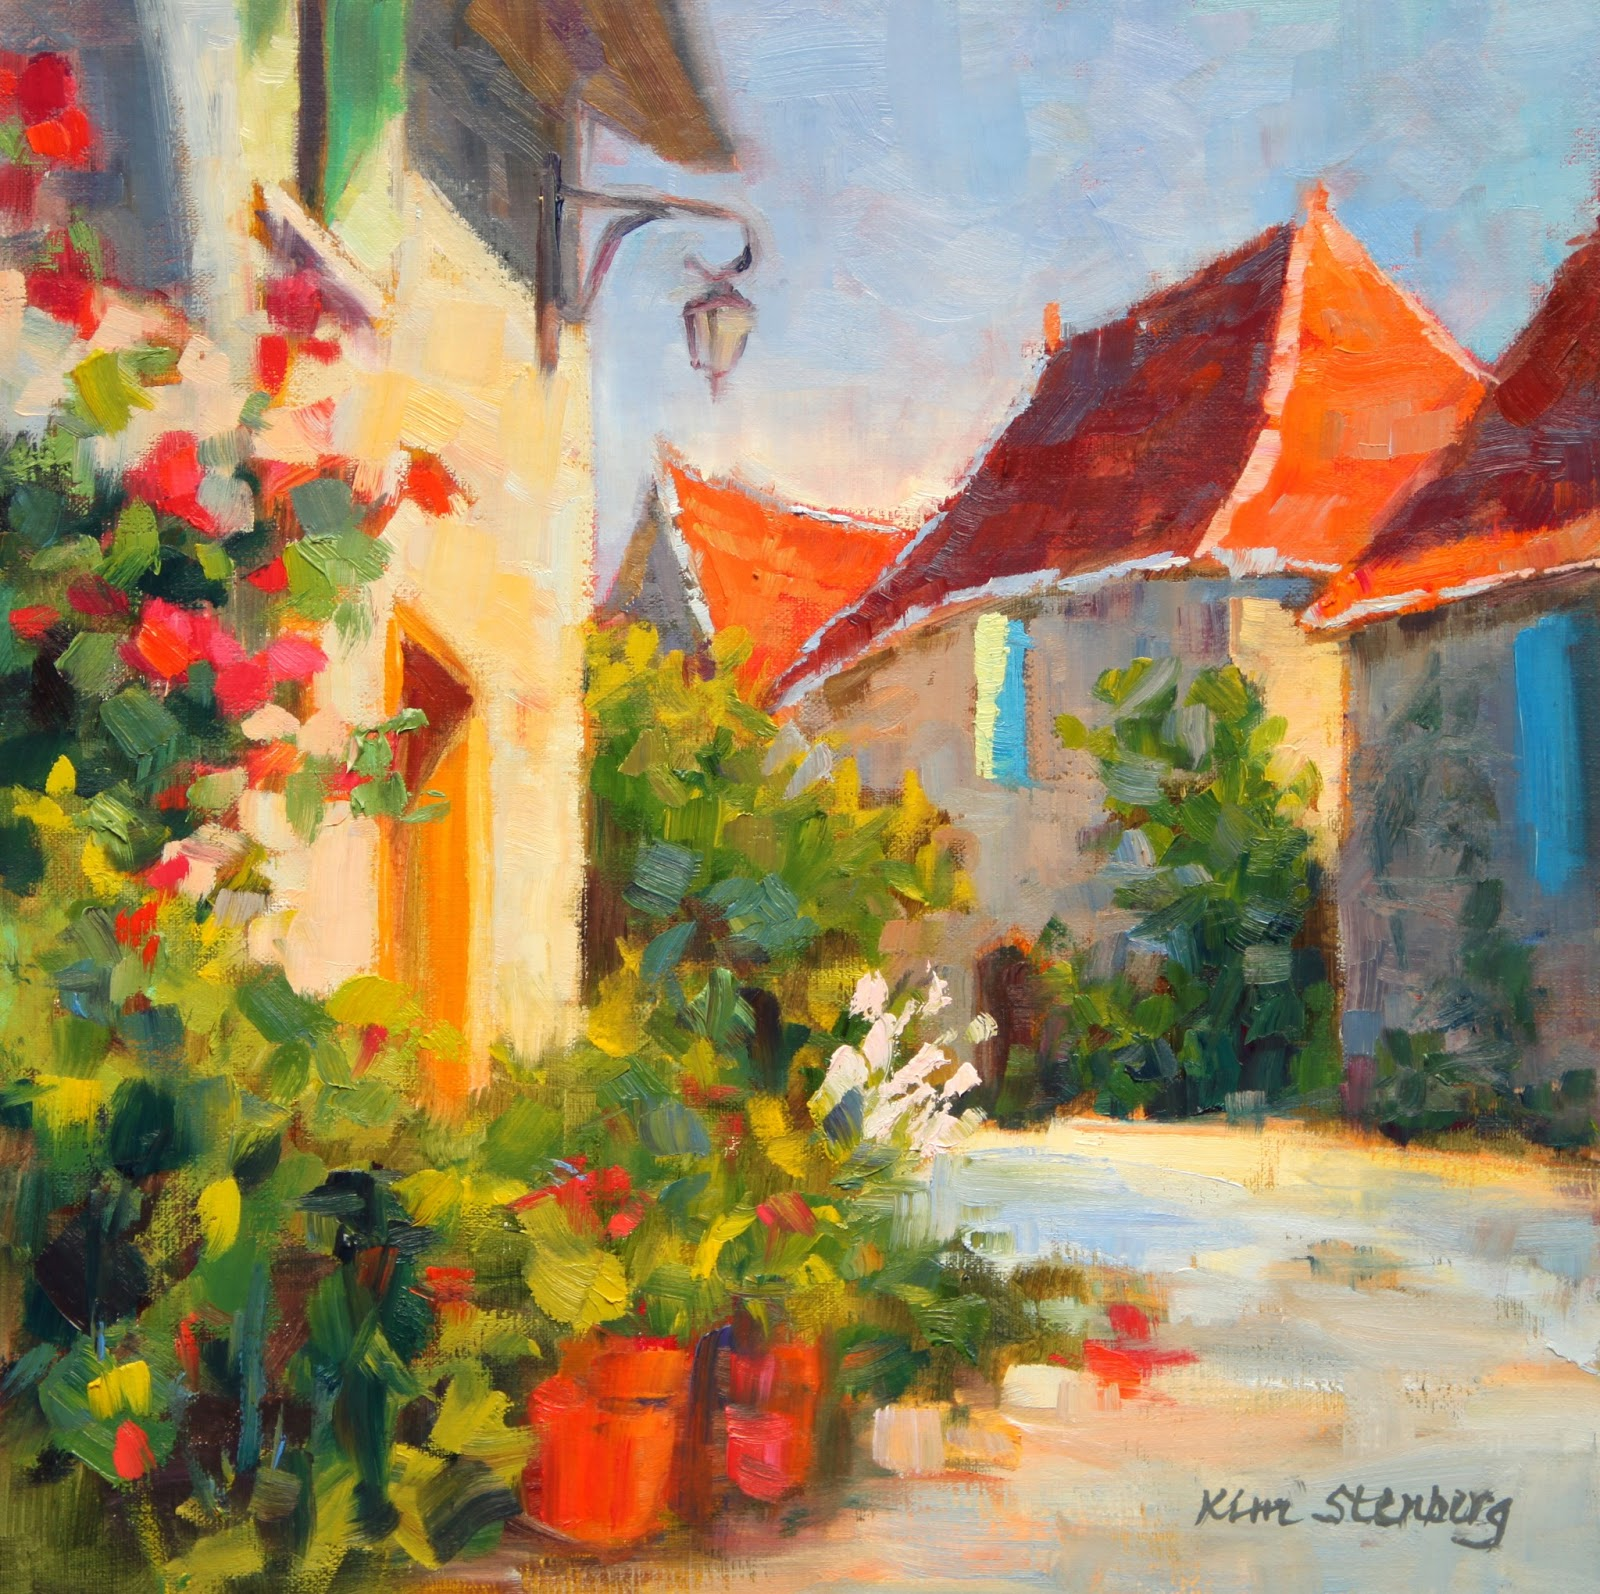 Kim Stenberg39s Painting Journal QuotFrench Villagequot Oil On Linen